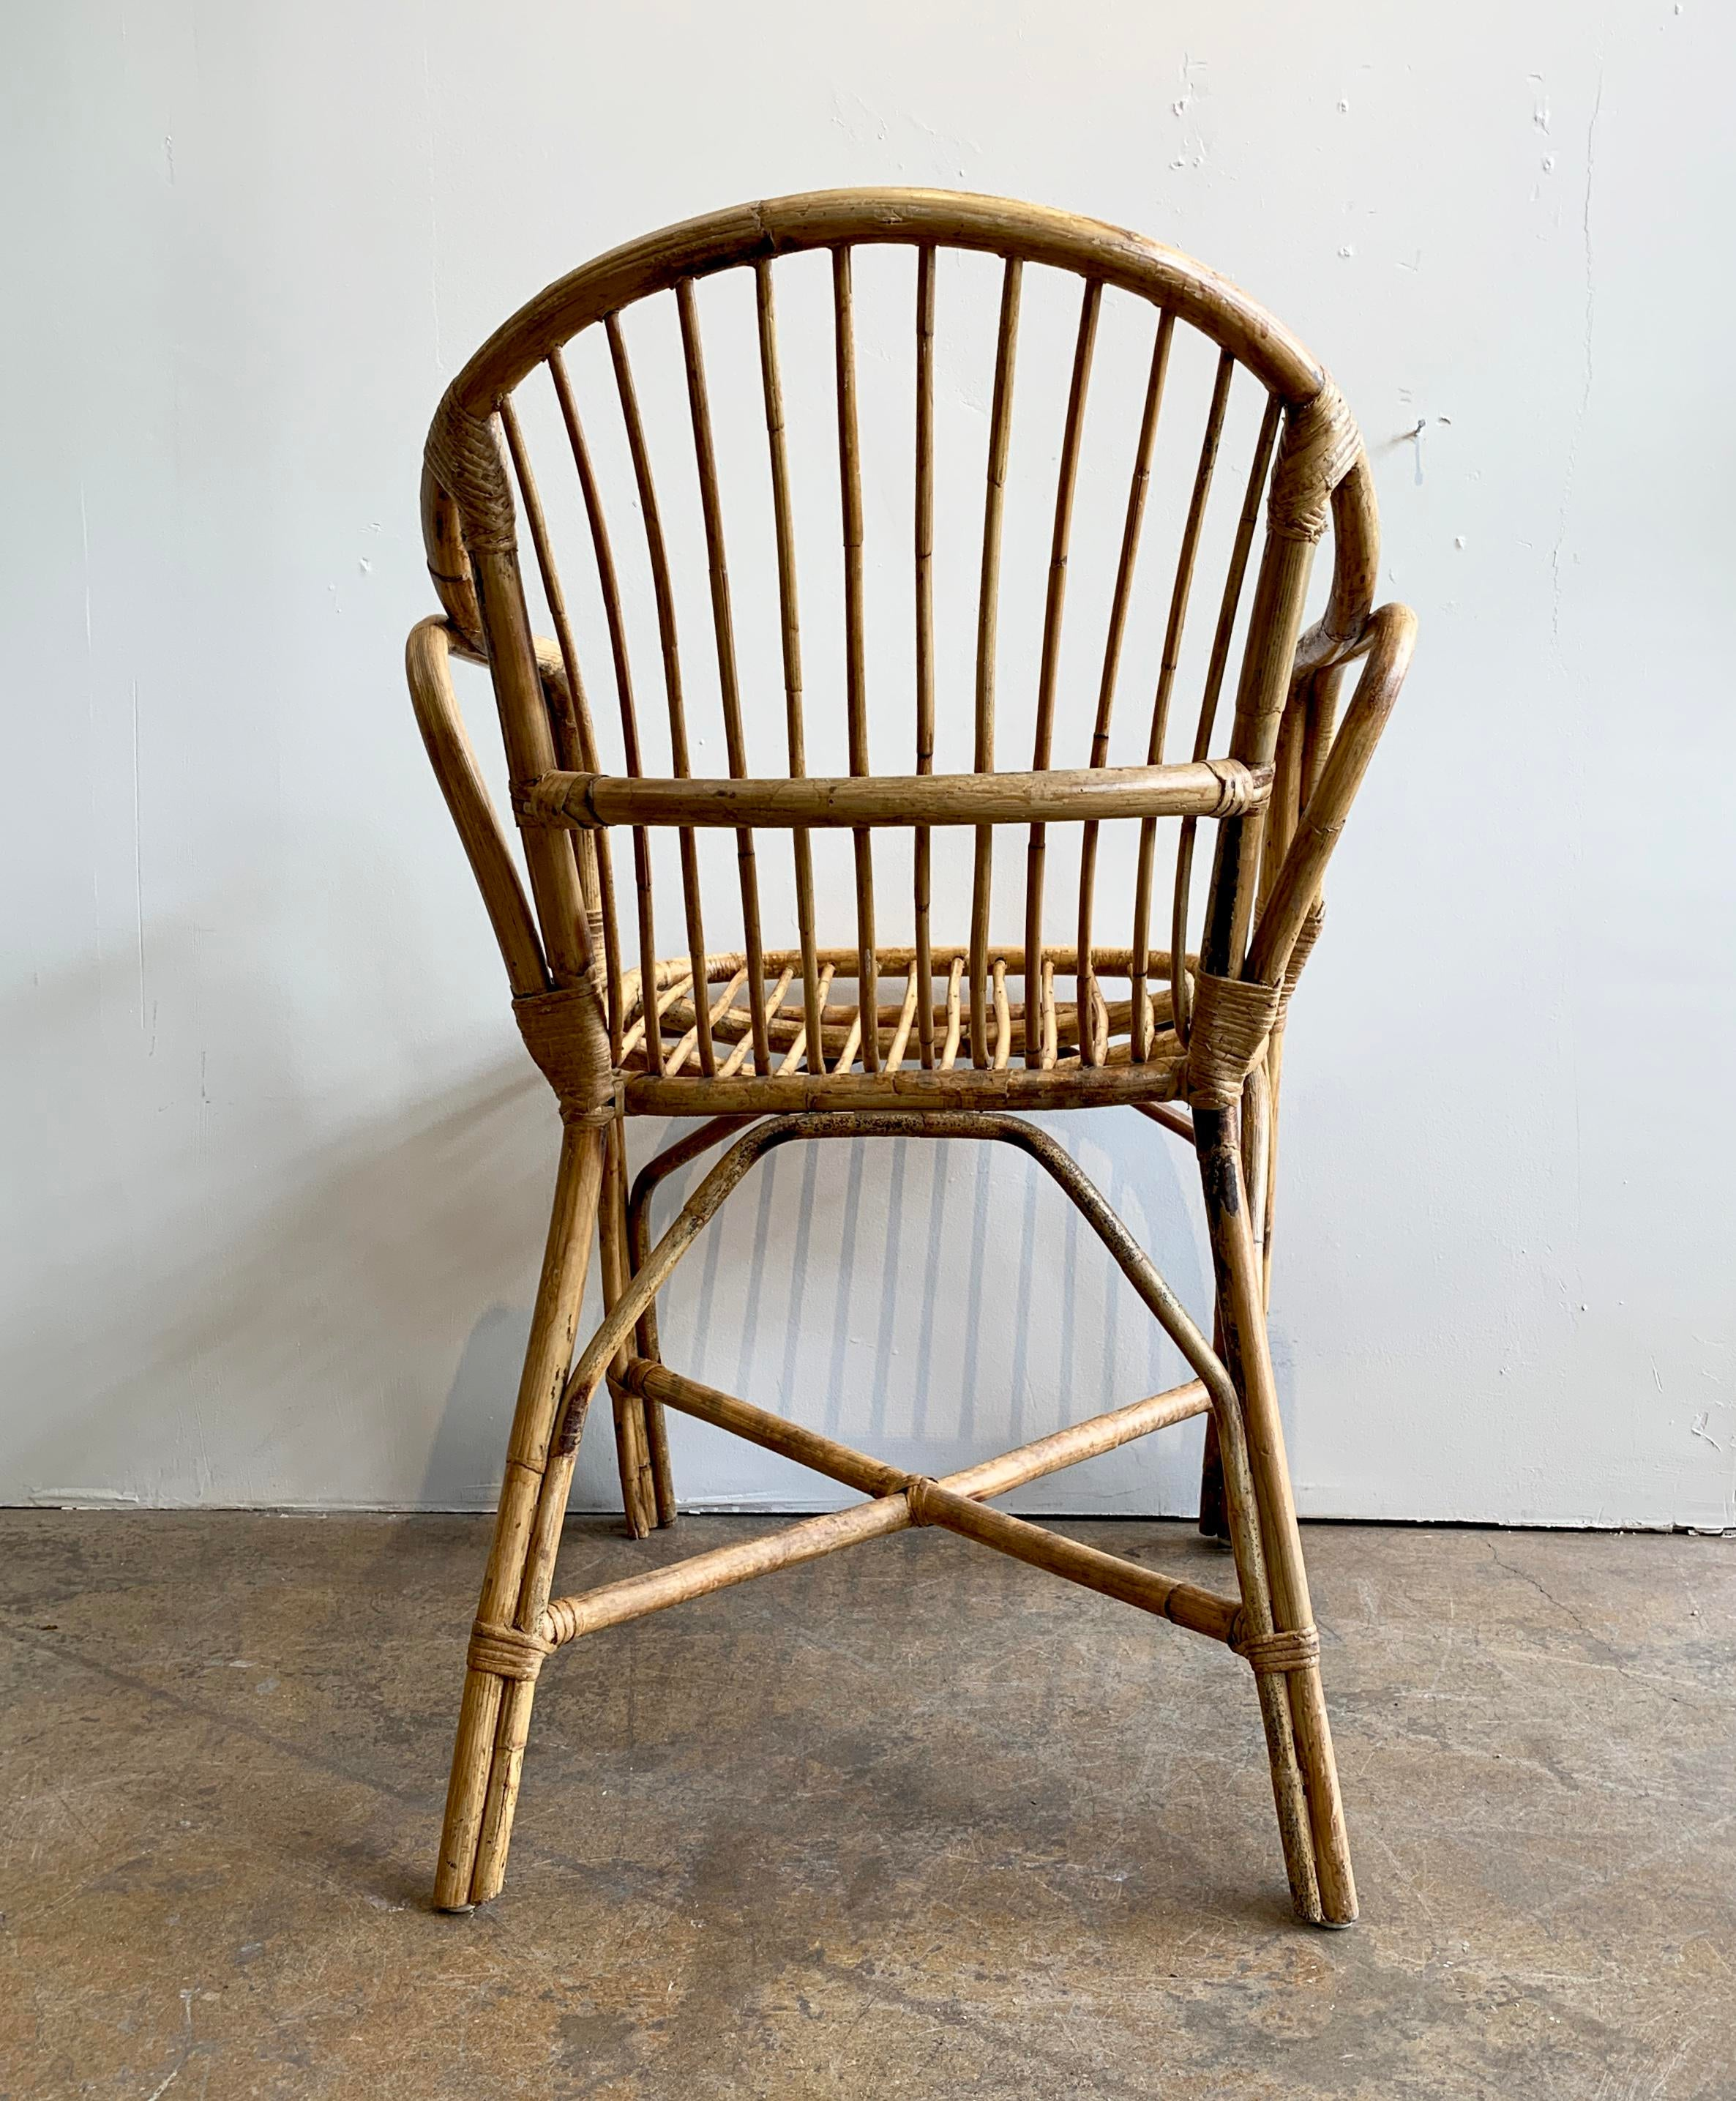 Merveilleux Franco Albini Vintage Rattan Chair For Sale   Image 4 Of 6